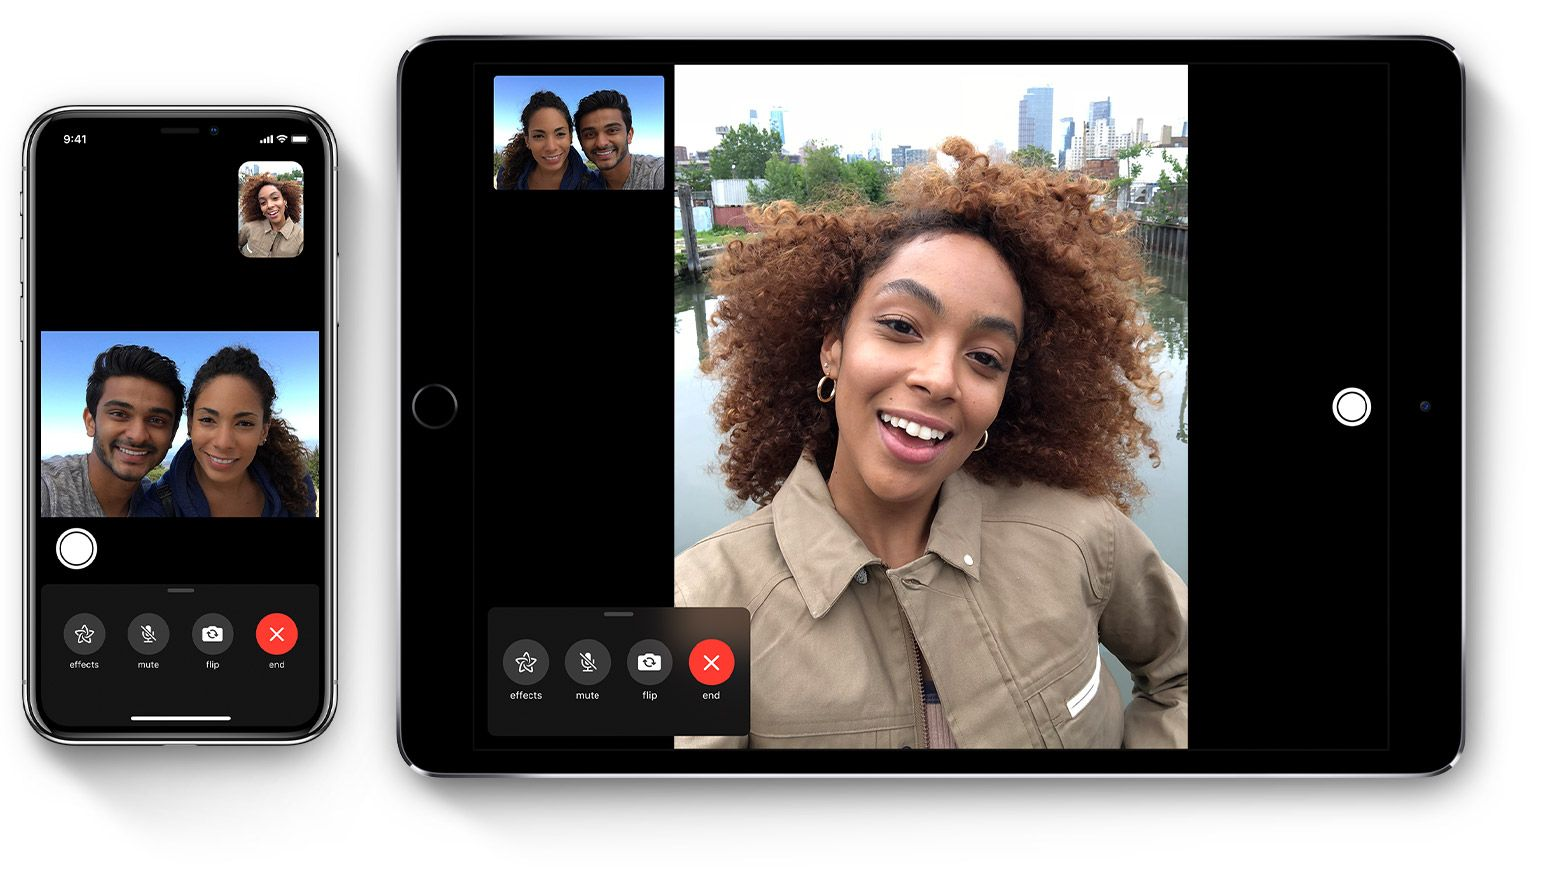 Apple pushes out iOS 12.1.4 to fix Group FaceTime